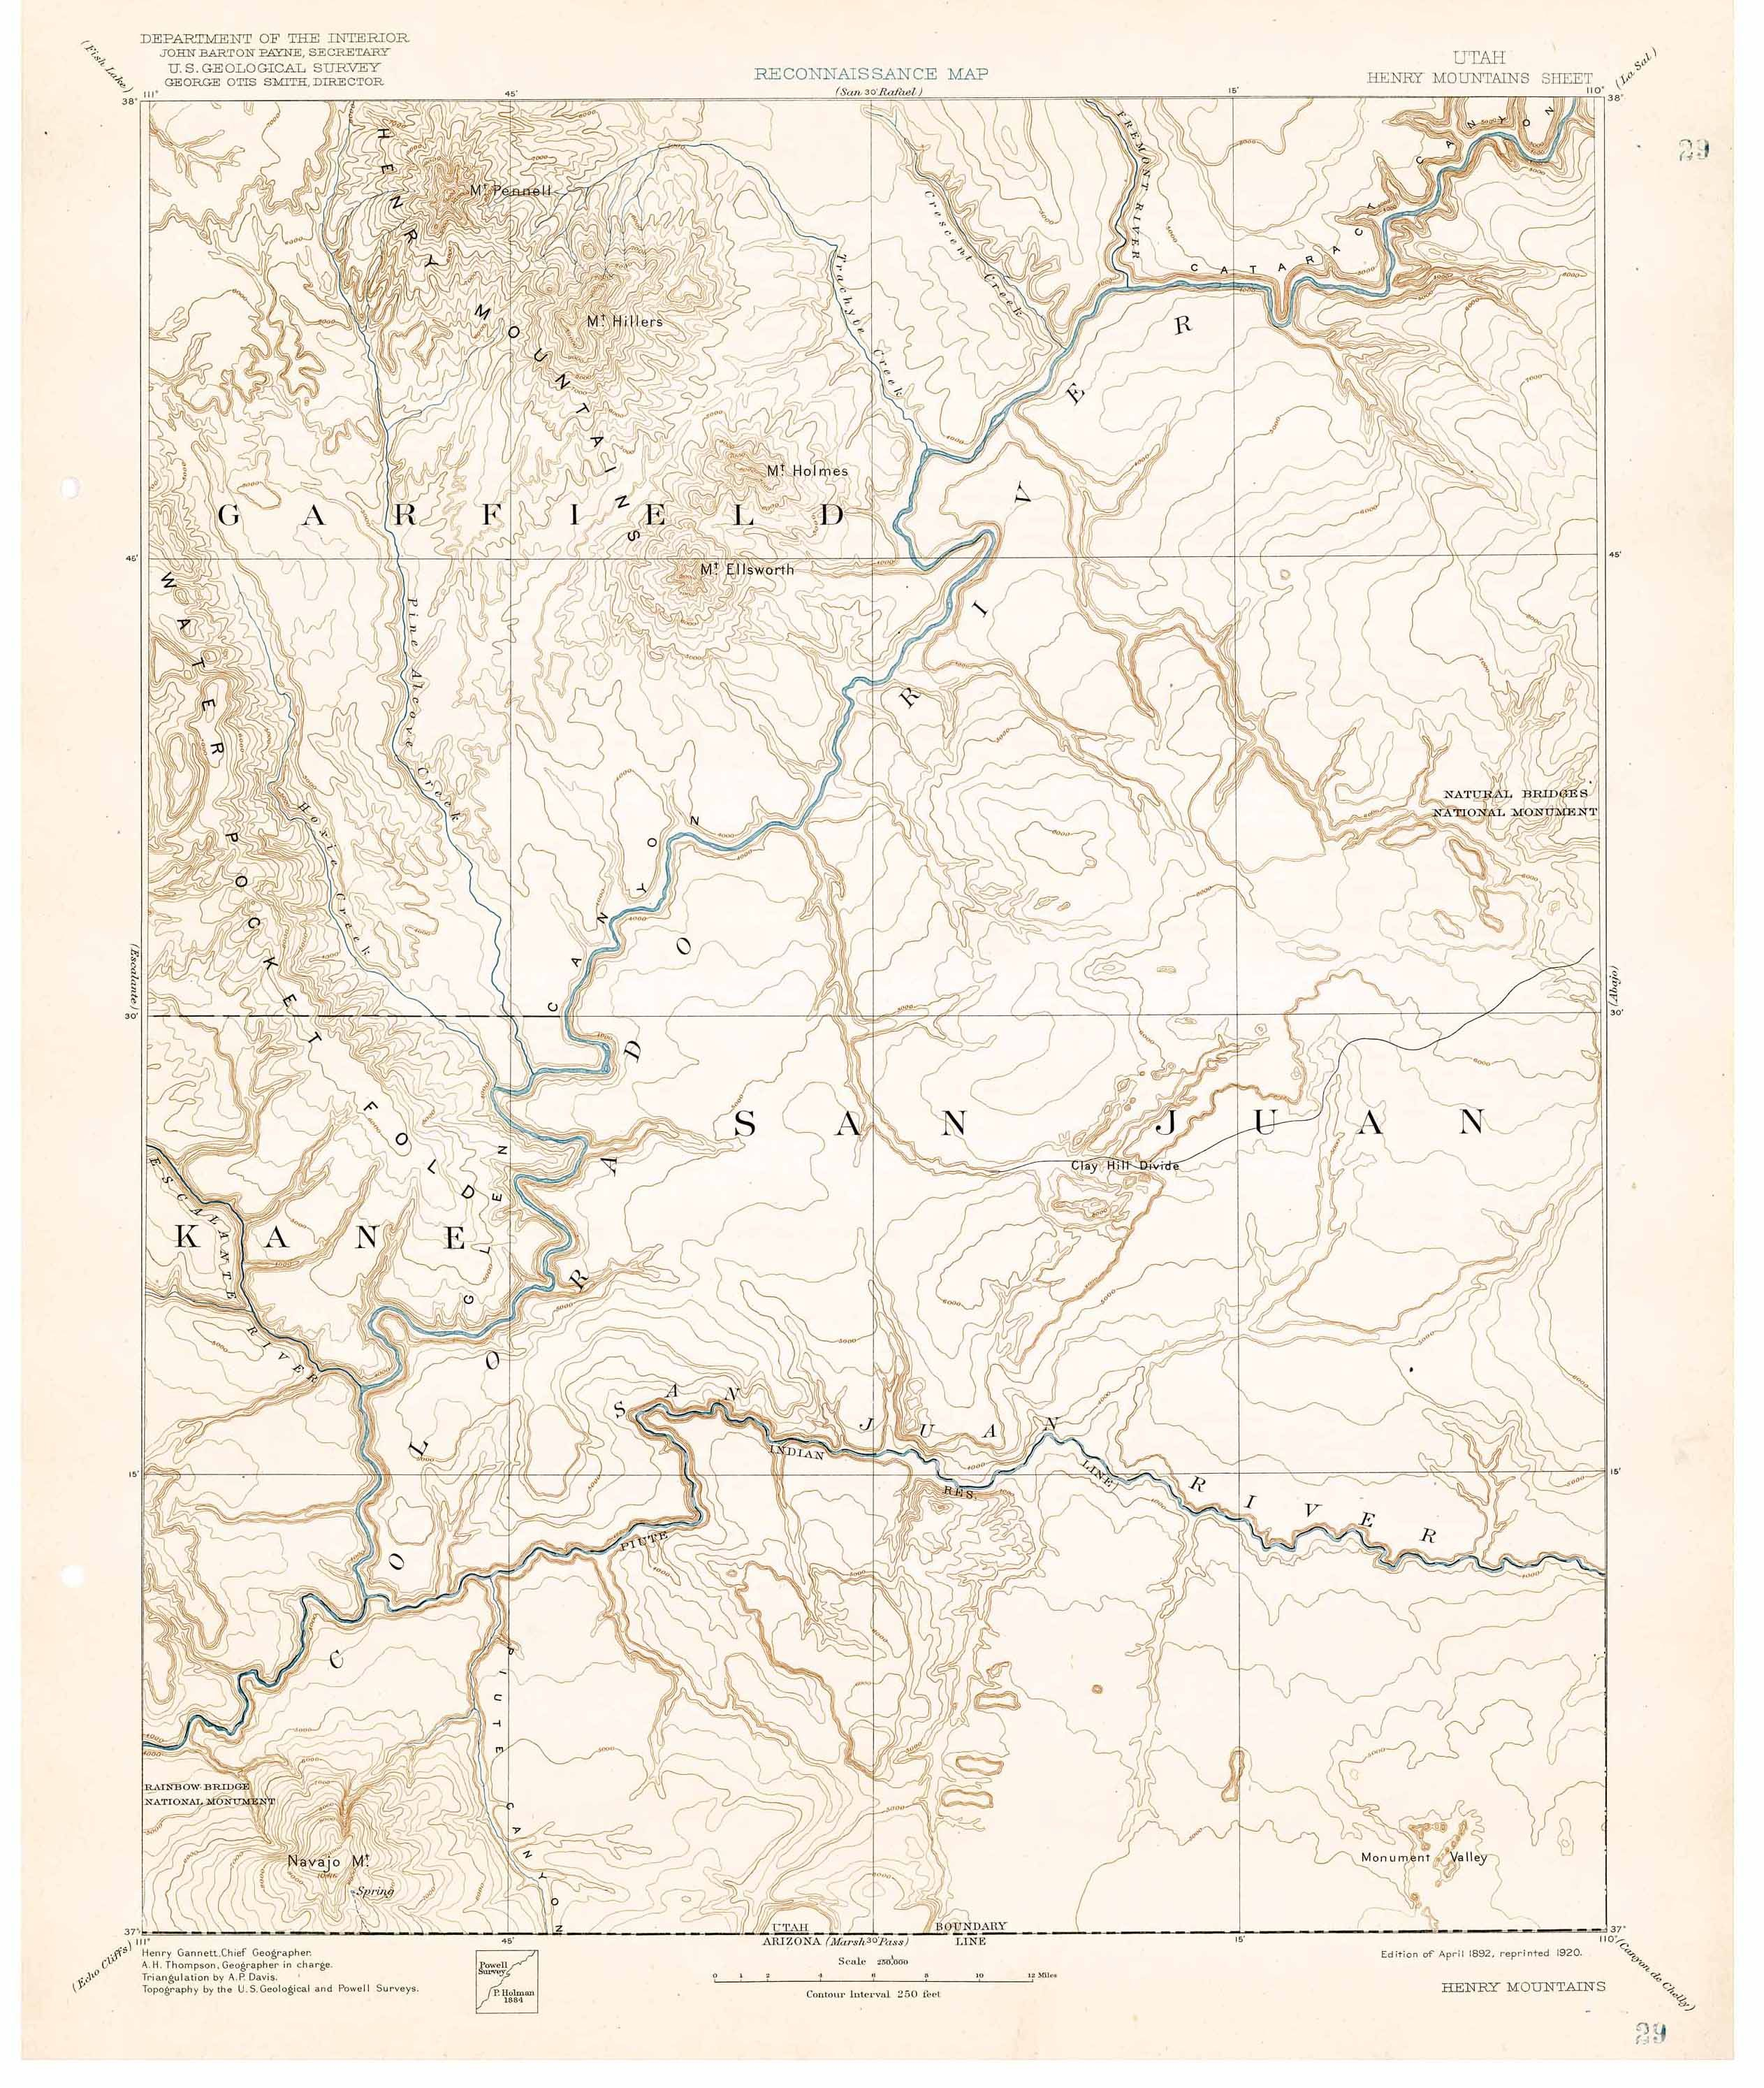 Collection C 007: USGS topographic map of Henry Mountains, Utah, at ...